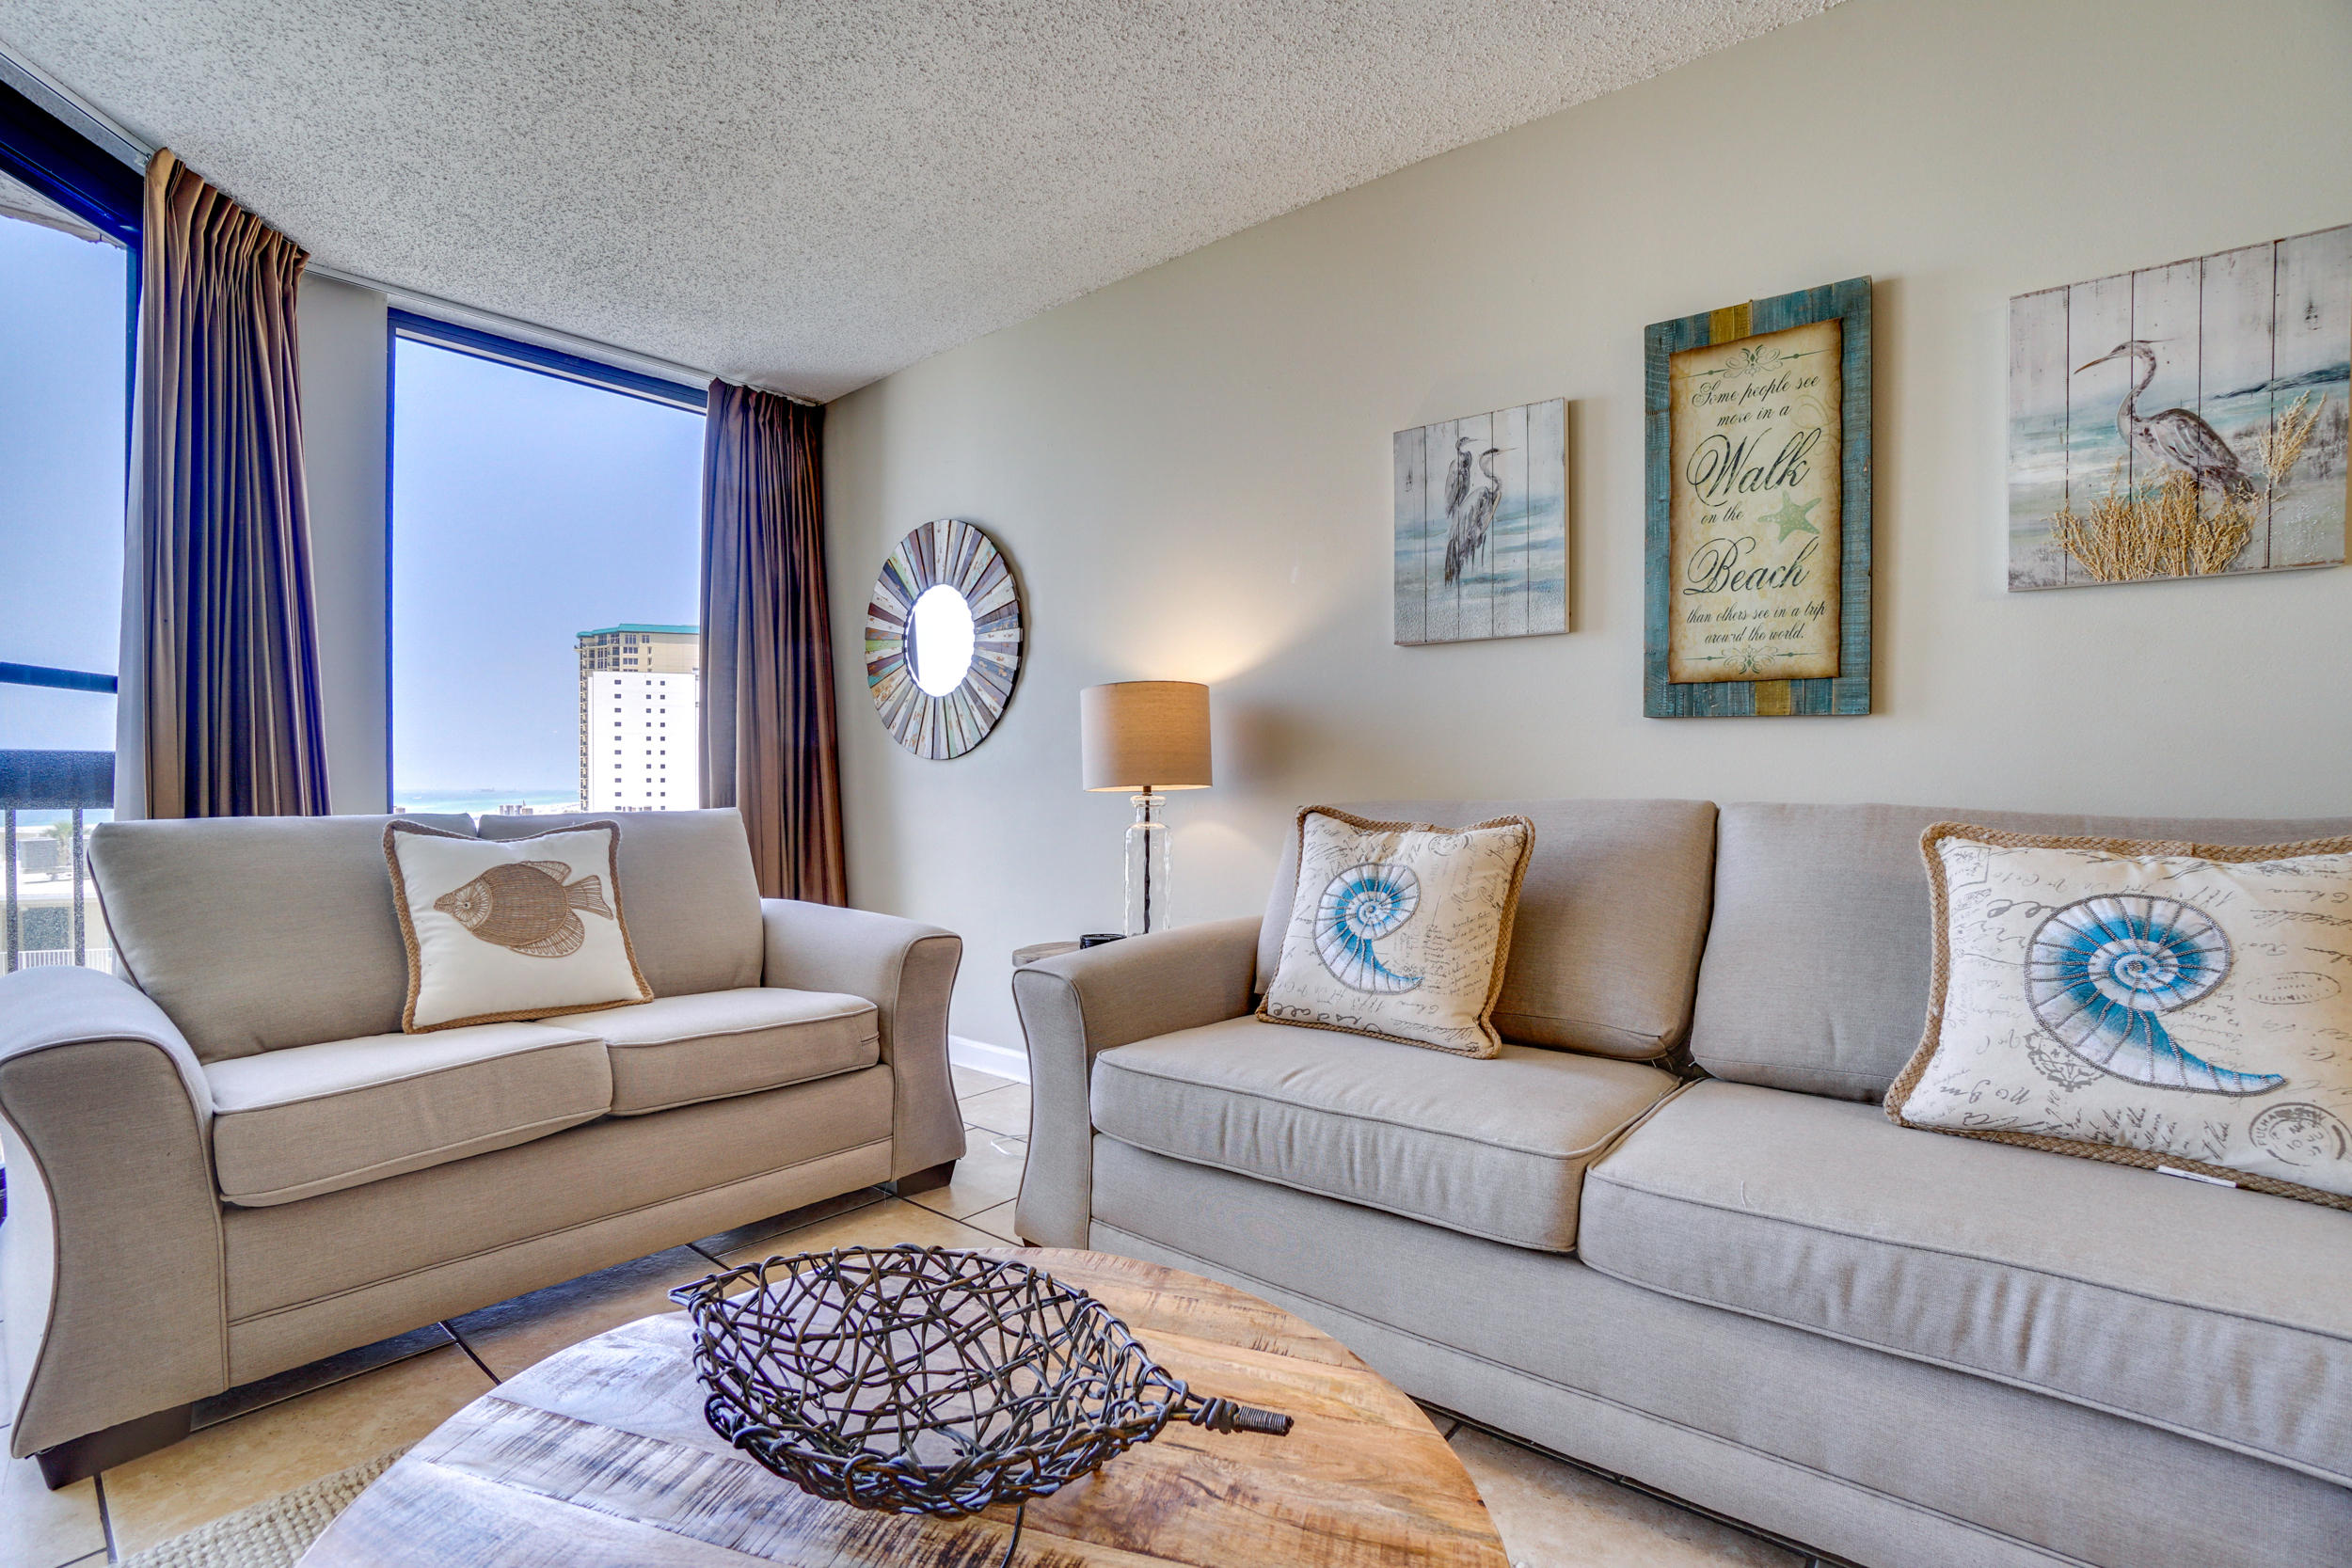 A warm Gulf breezes awaits you in this beautiful 1 bedroom condo in the Sundestin Resort. This brigh